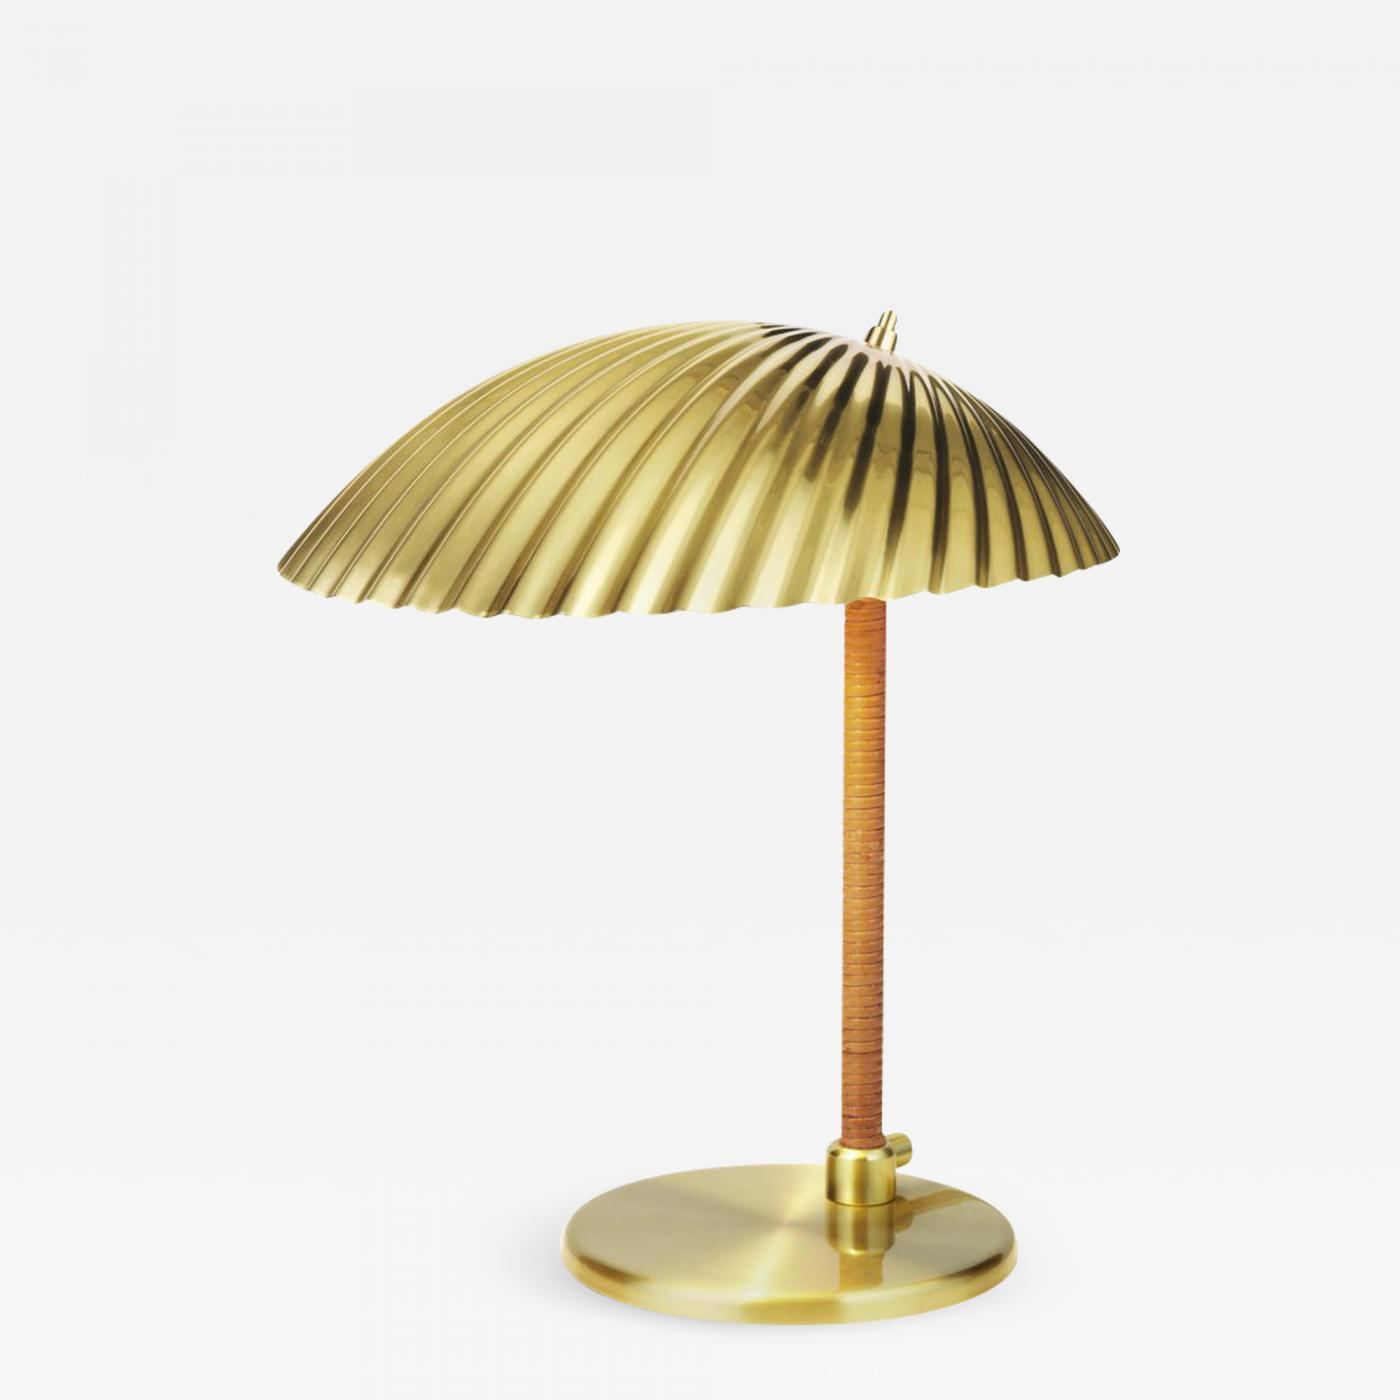 Rattan Table Gubi Paavo Tynell Model 5321 Brass And Rattan Table Lamp